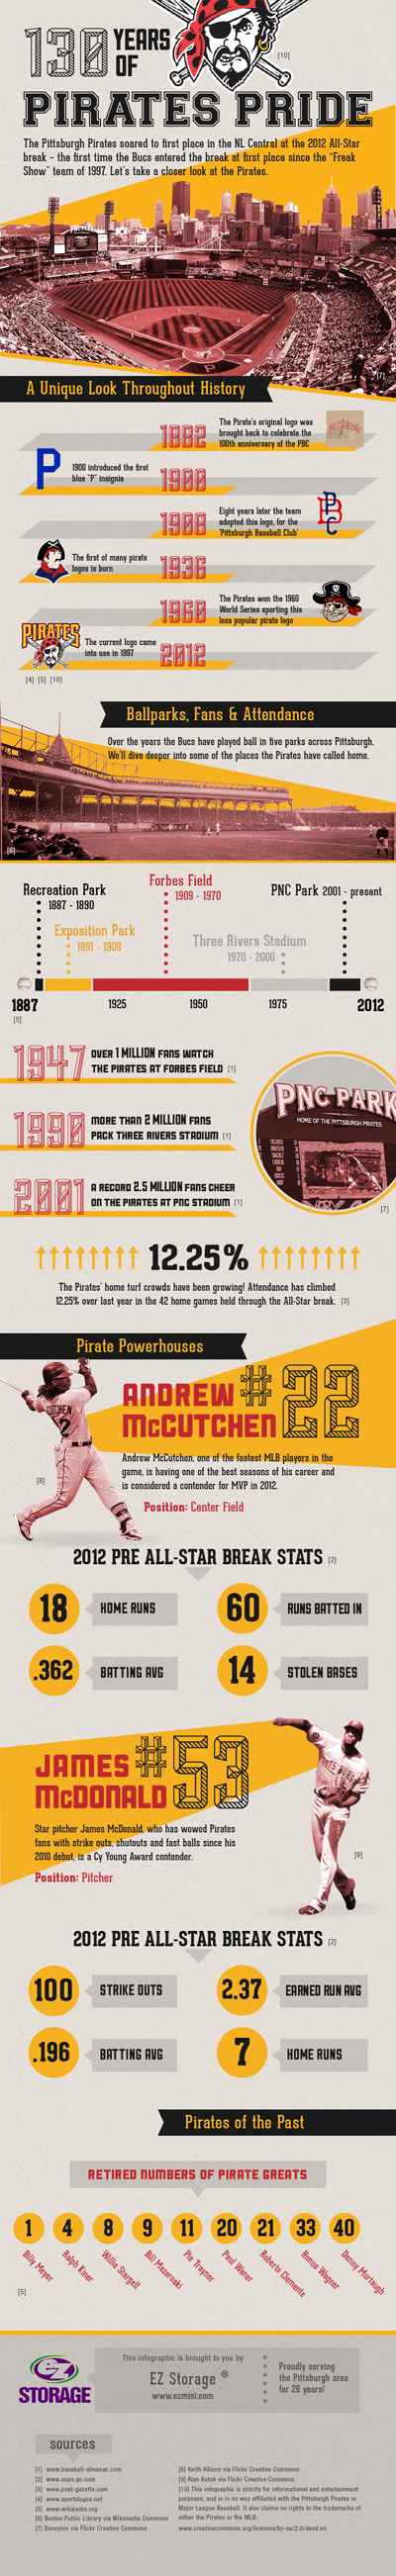 130 Years of Pirates Pride - a Pittsburgh Pirates Infographic